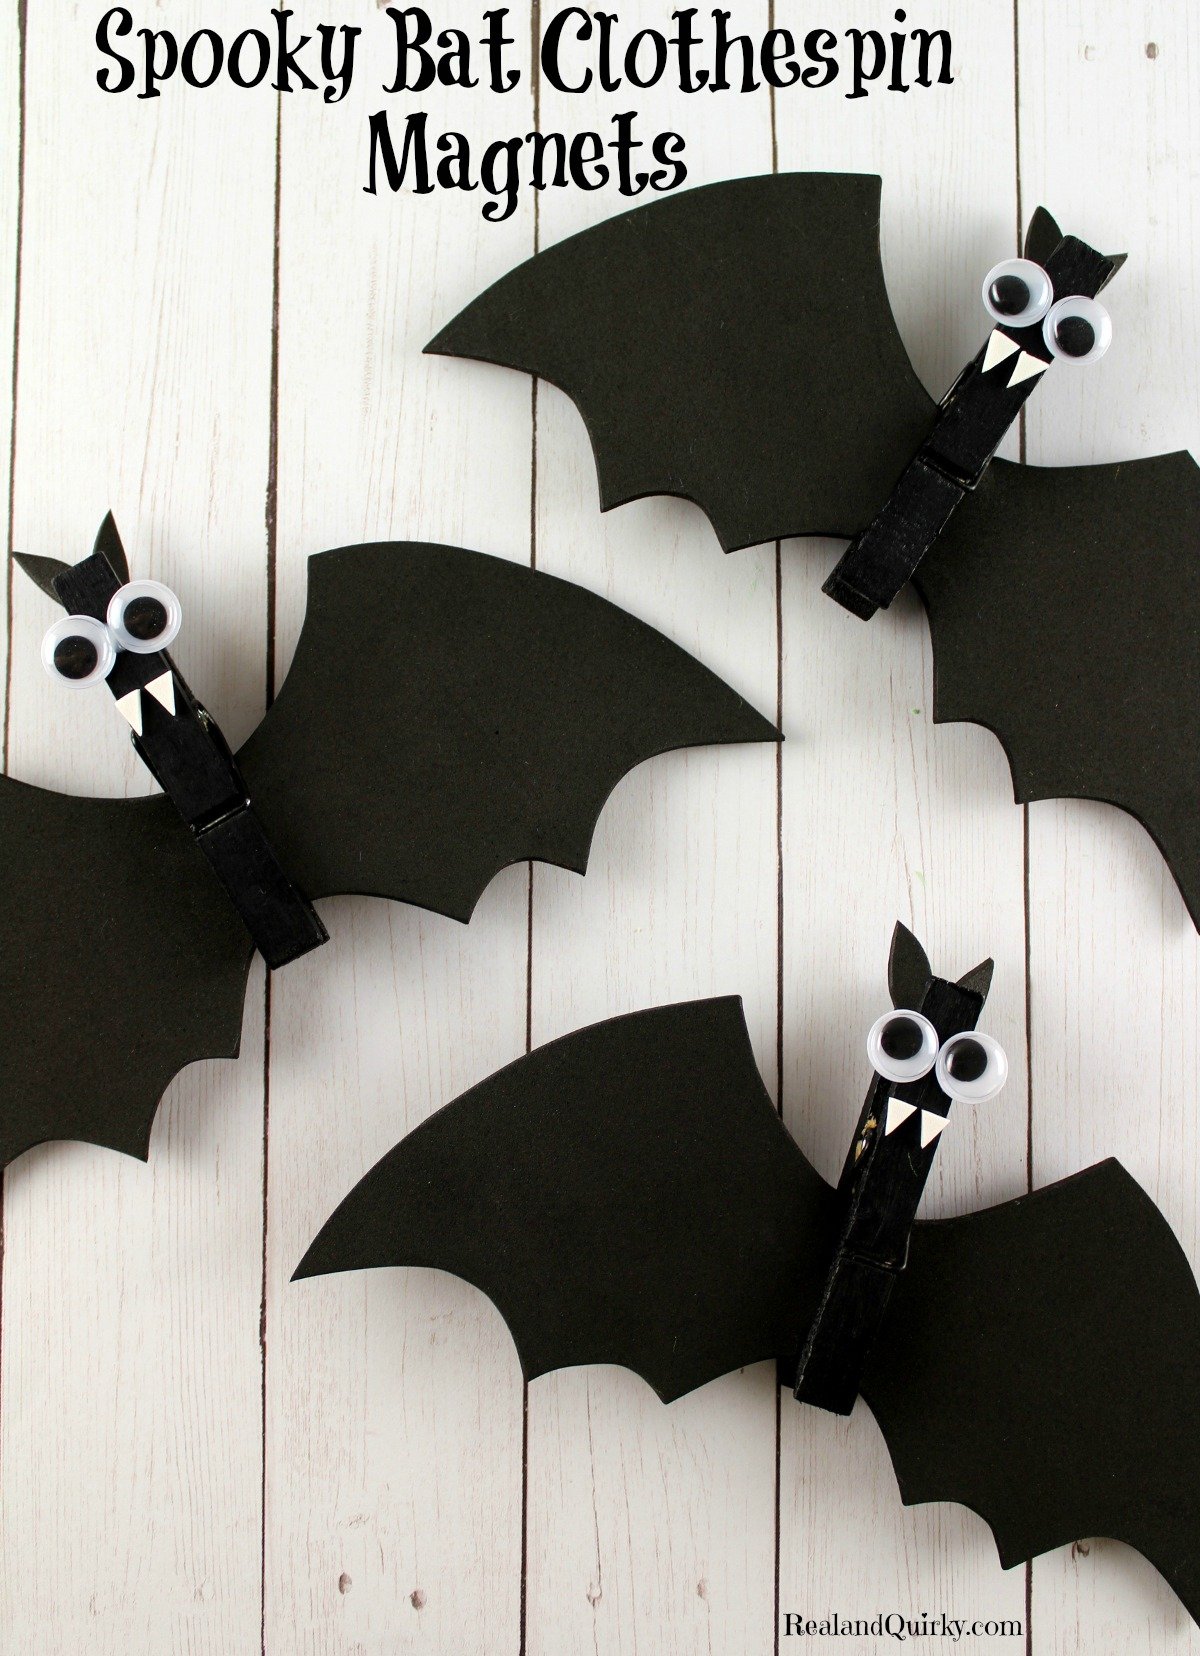 Spooky Bat Clothespin Magnets as seen on RealandQuirky.com